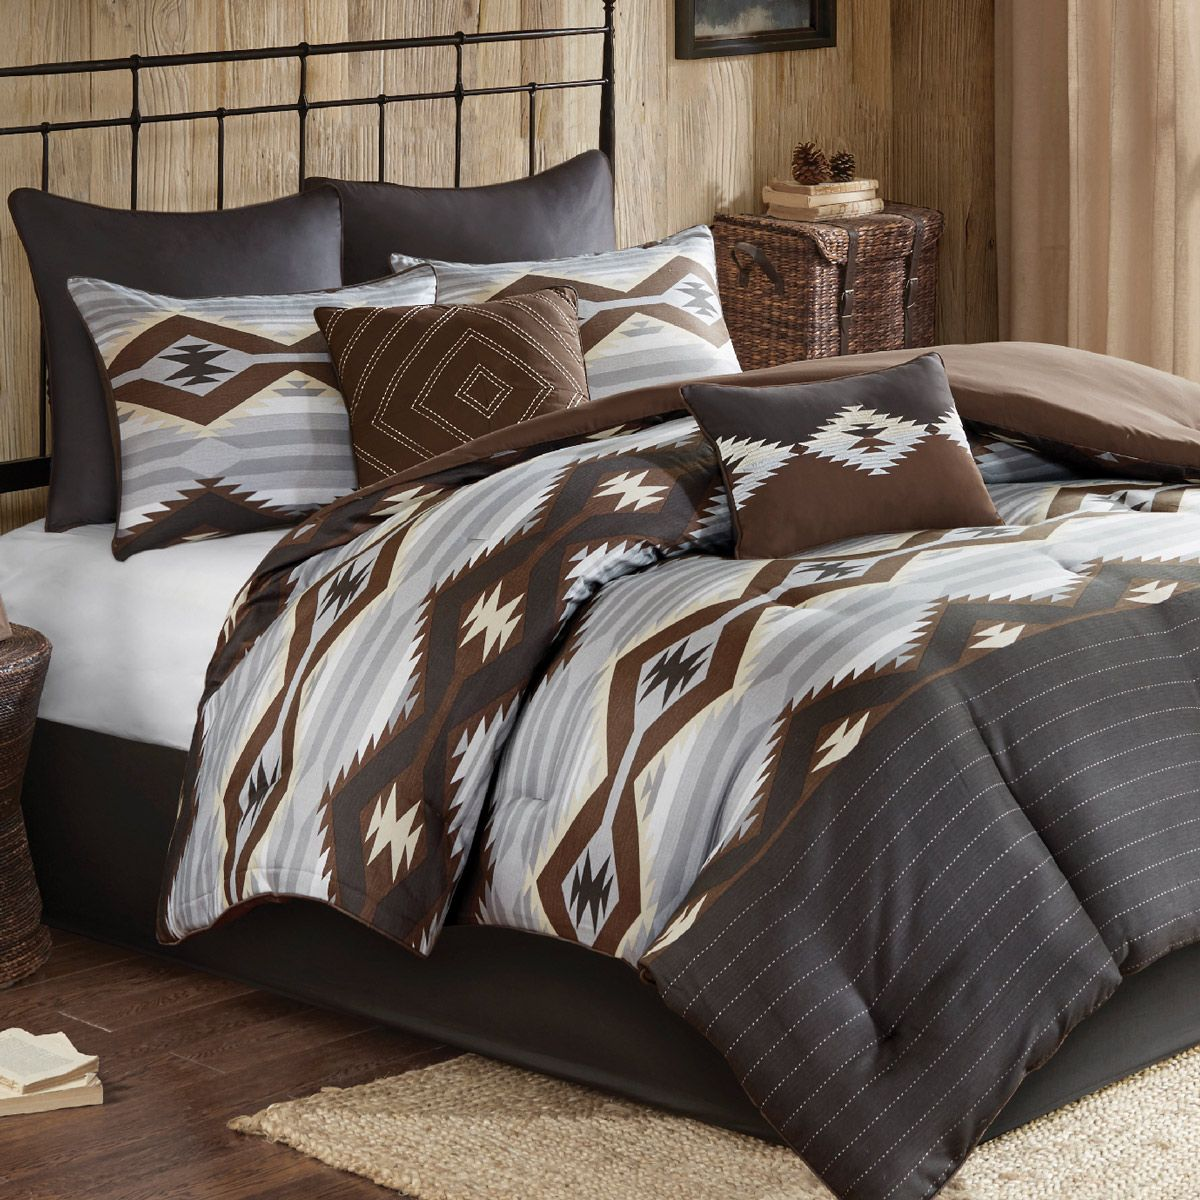 Slate River Oversized Bed Set - King